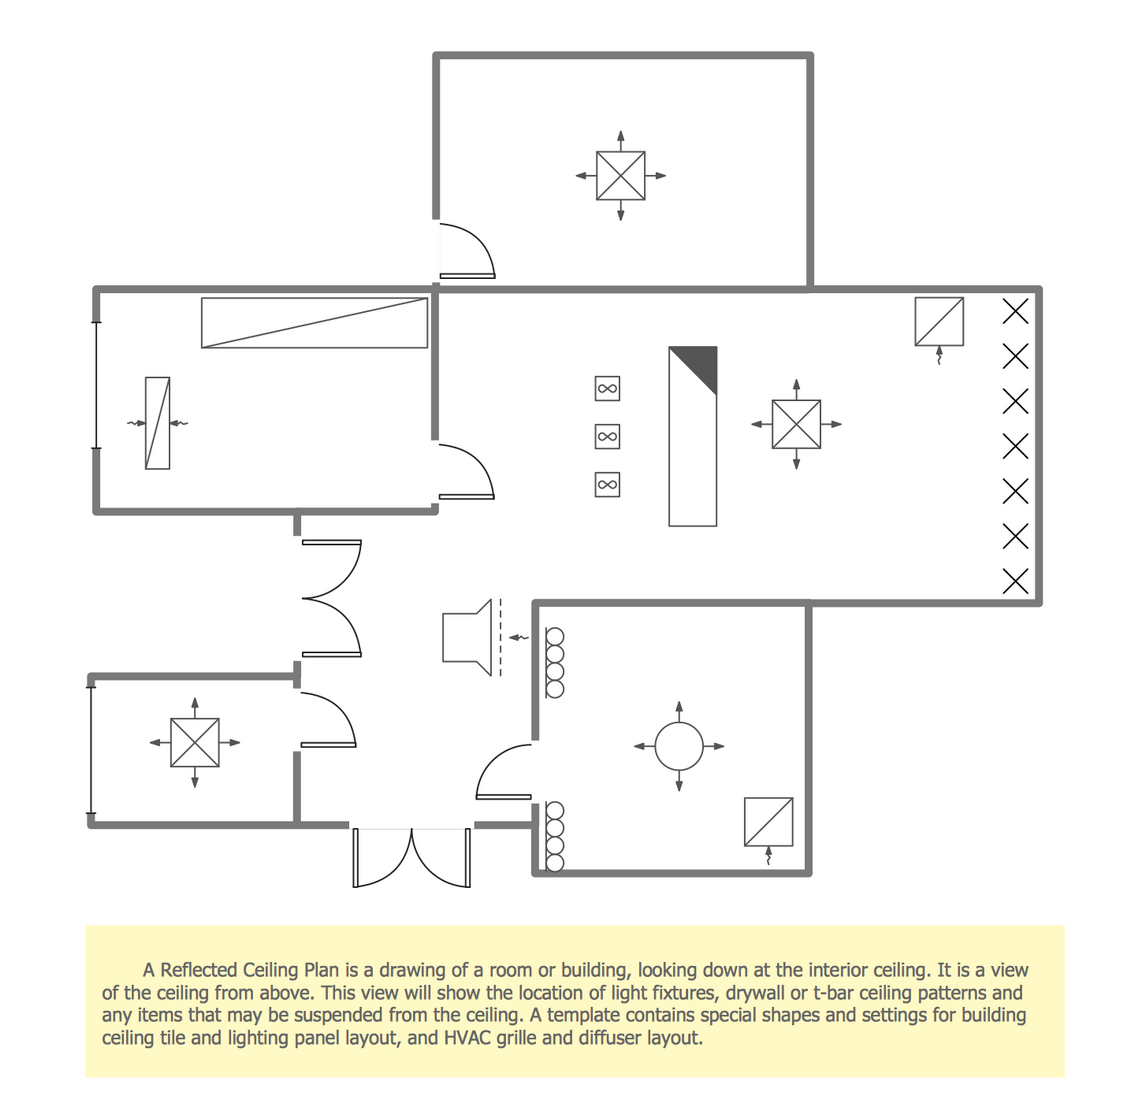 Reflected Ceiling Plan Template